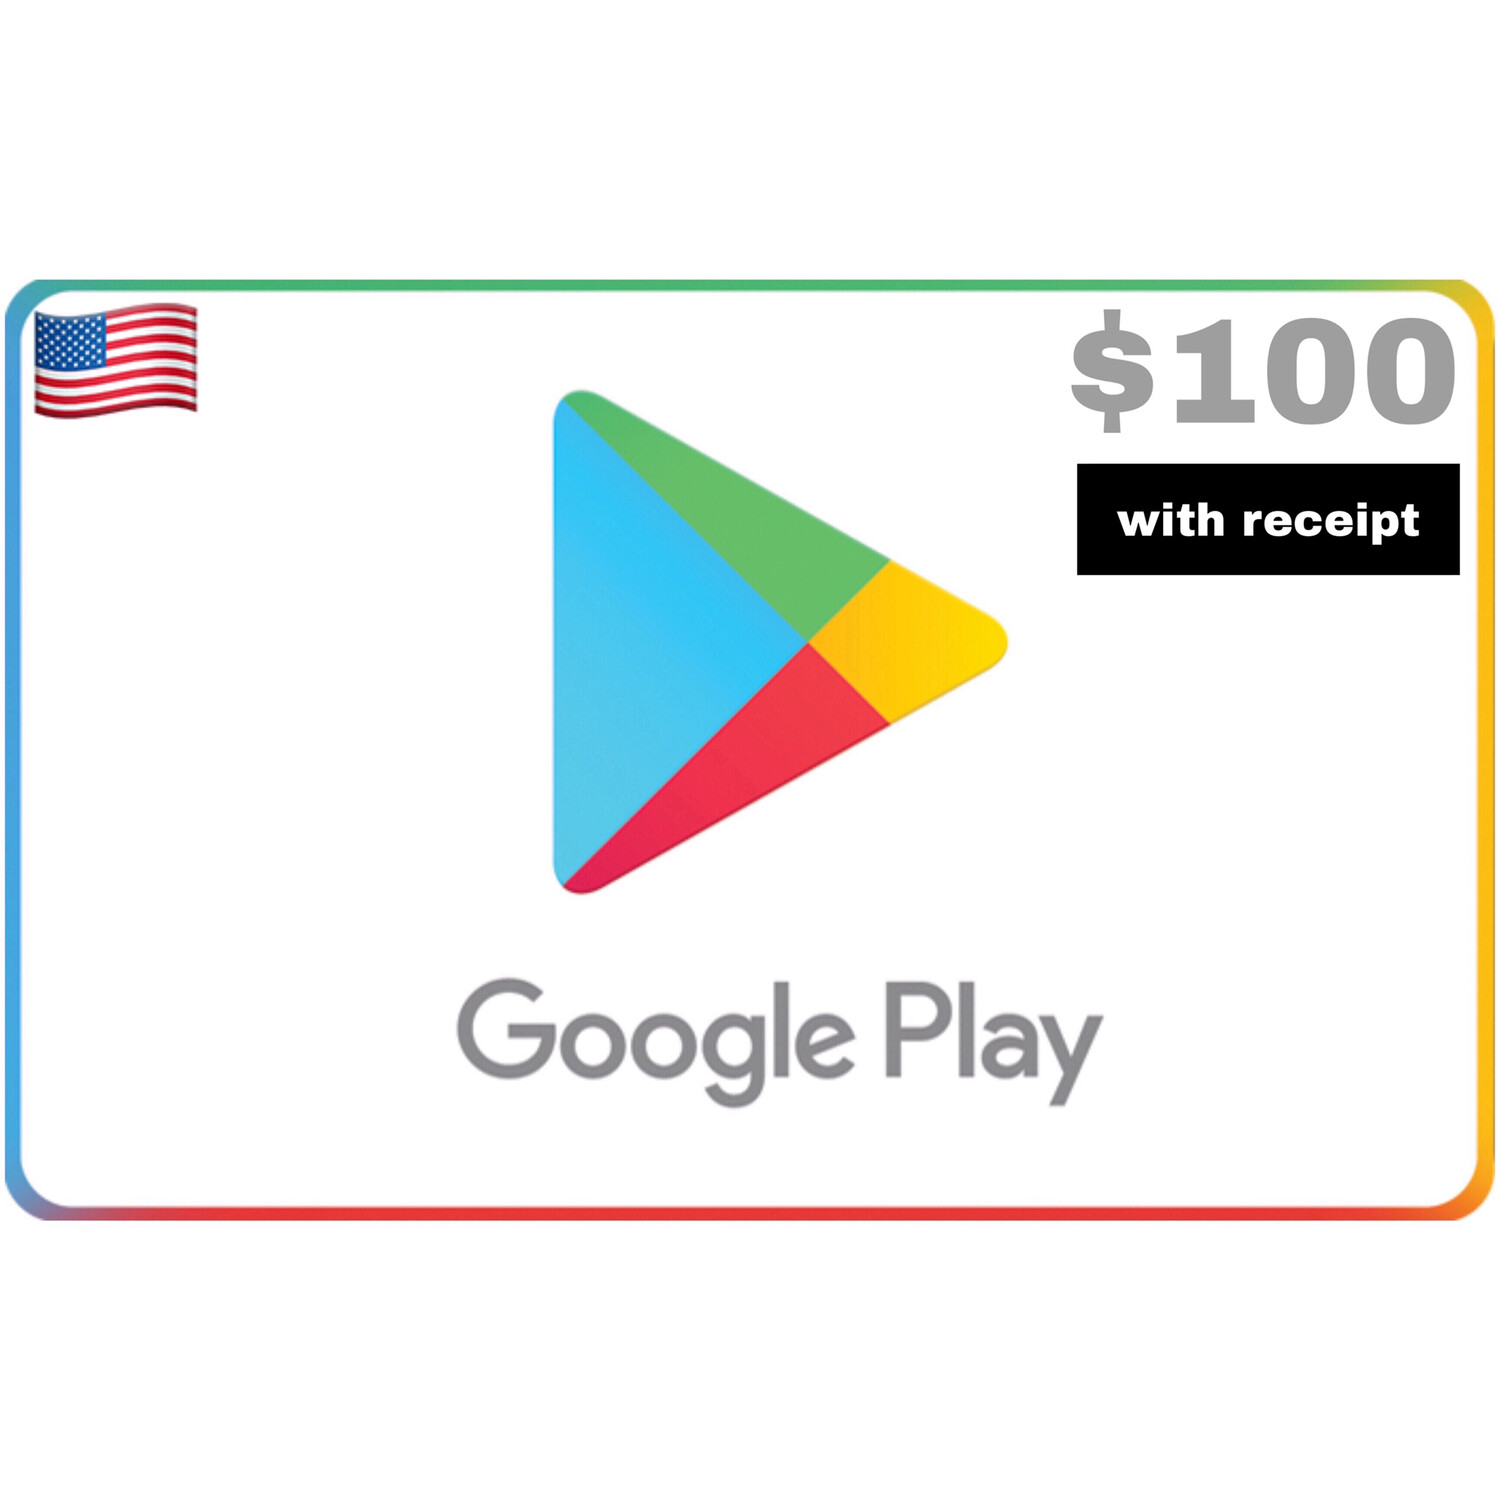 Google Play Gift Card US $100 with receipt